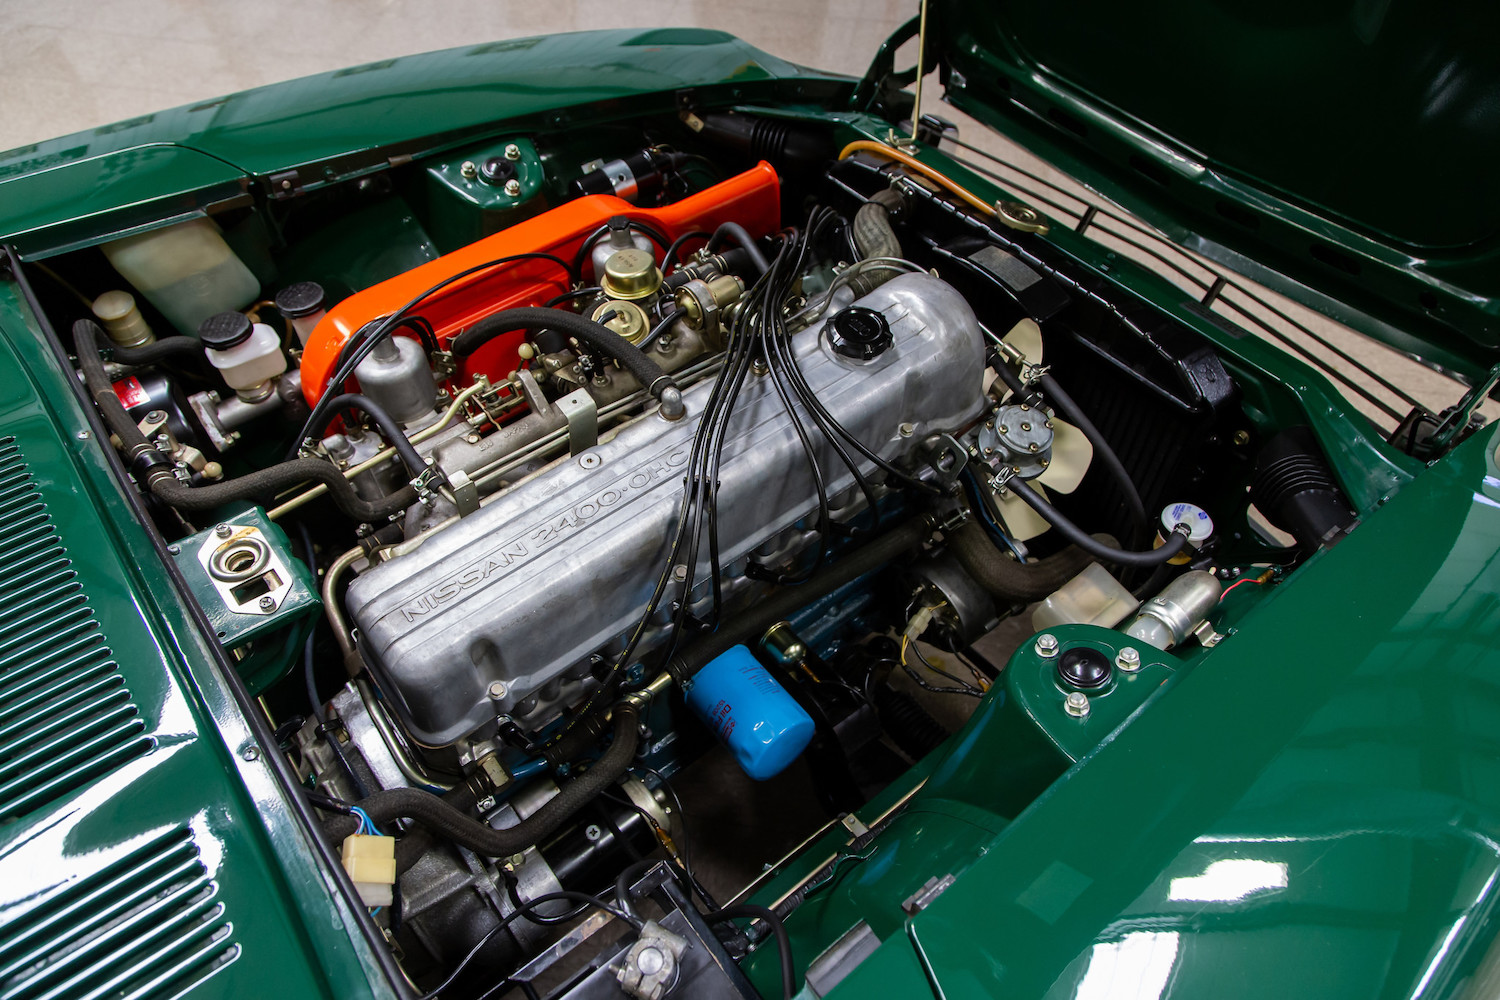 1971 Datsun 240Z Series I engine